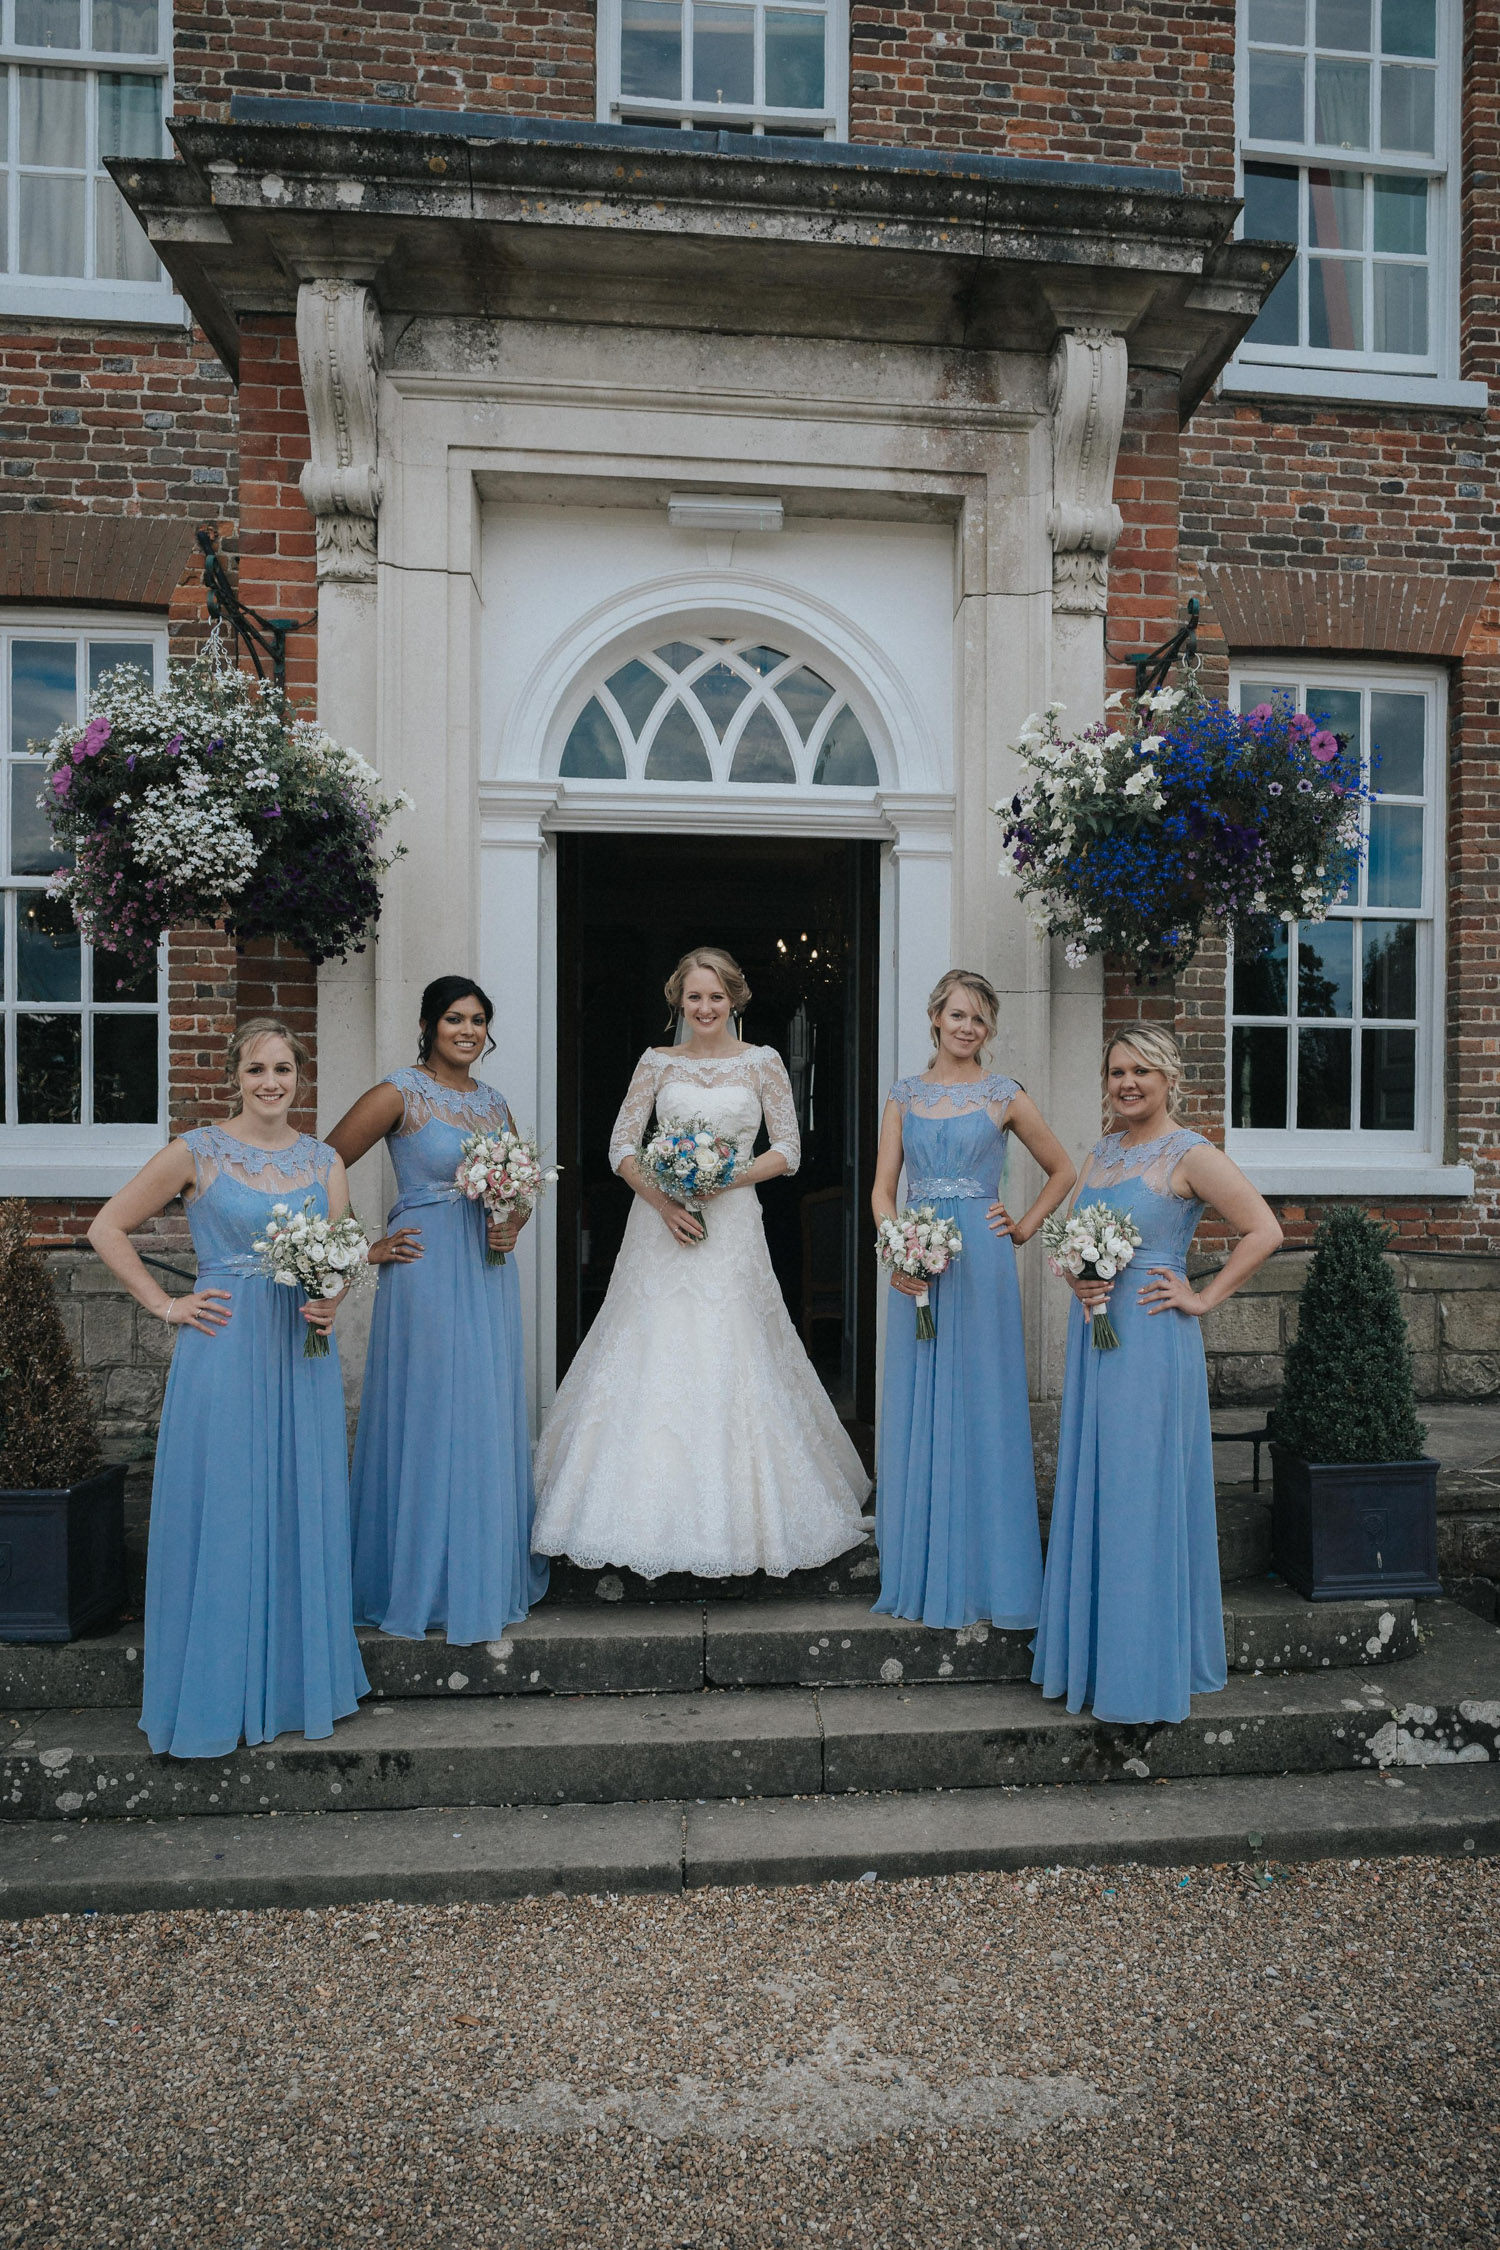 Wedding Group shots at Chilston Park Hotel